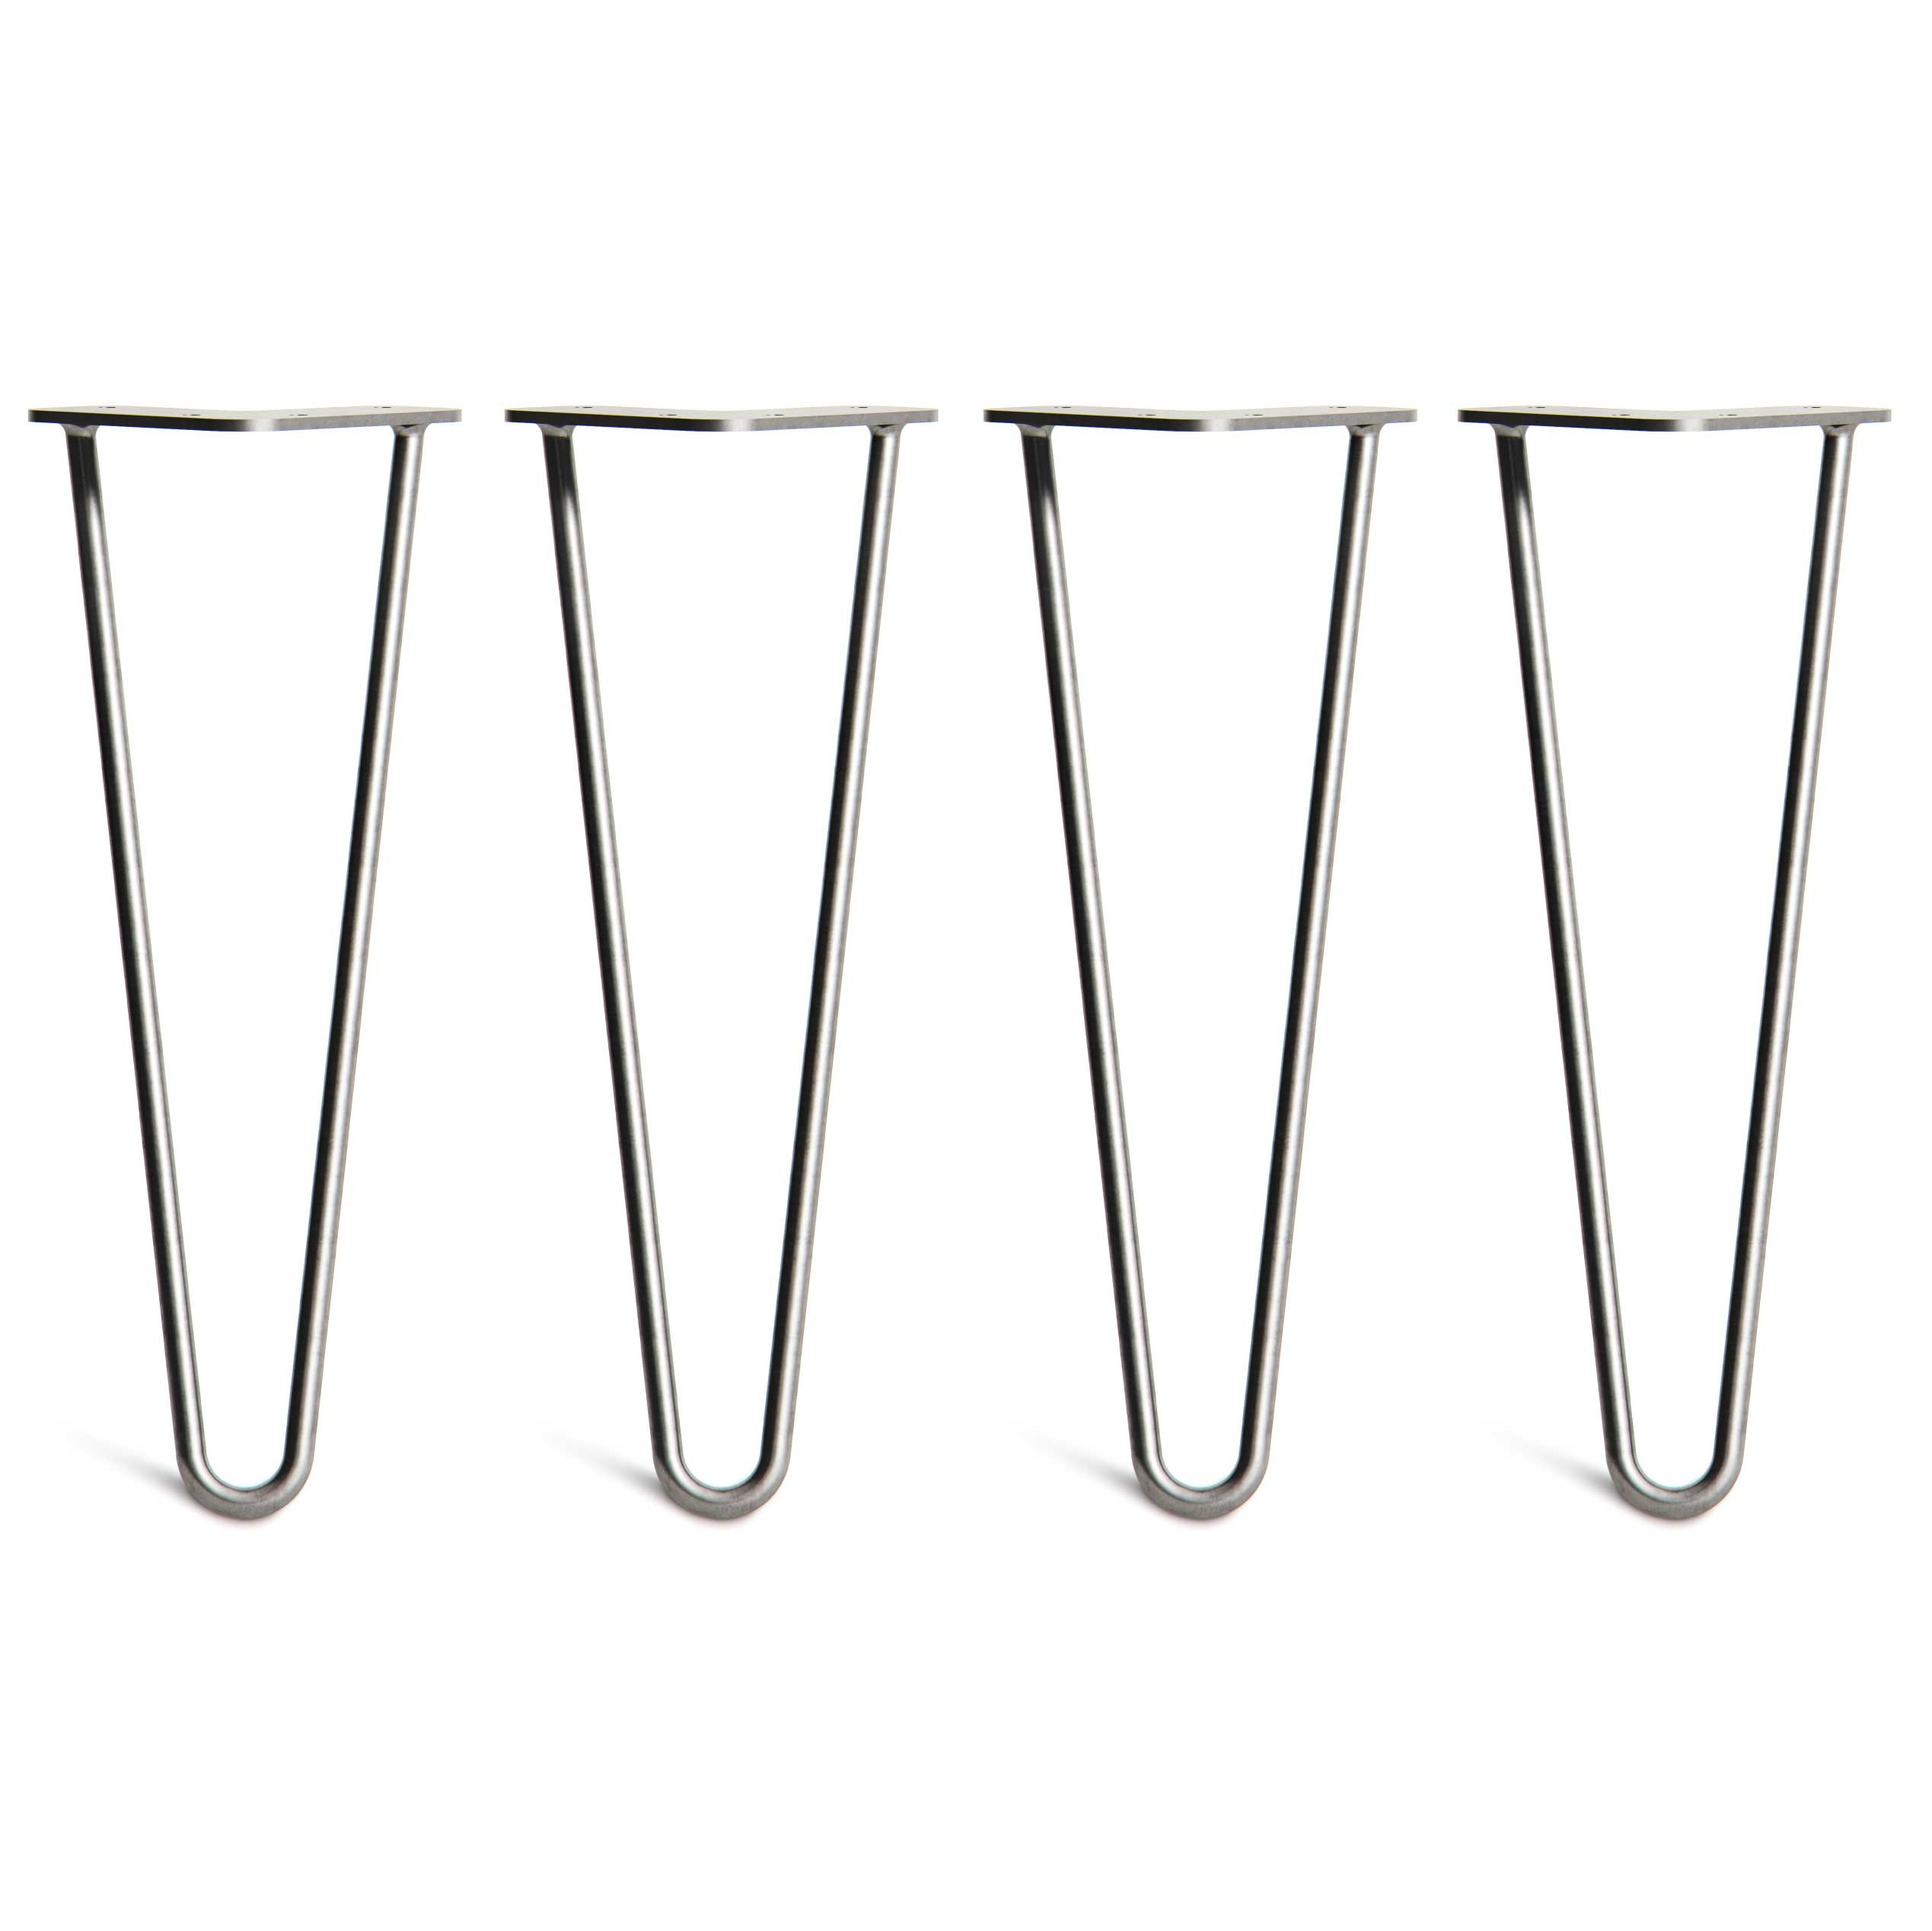 4 x Hairpin Table Legs – Superior Double Weld Steel Construction With FREE Screws, Build Guide & Protector Feet, Worth $10! – Mid-Century Modern Style – 4'' To 34'', All Finishes (3/8 inch)